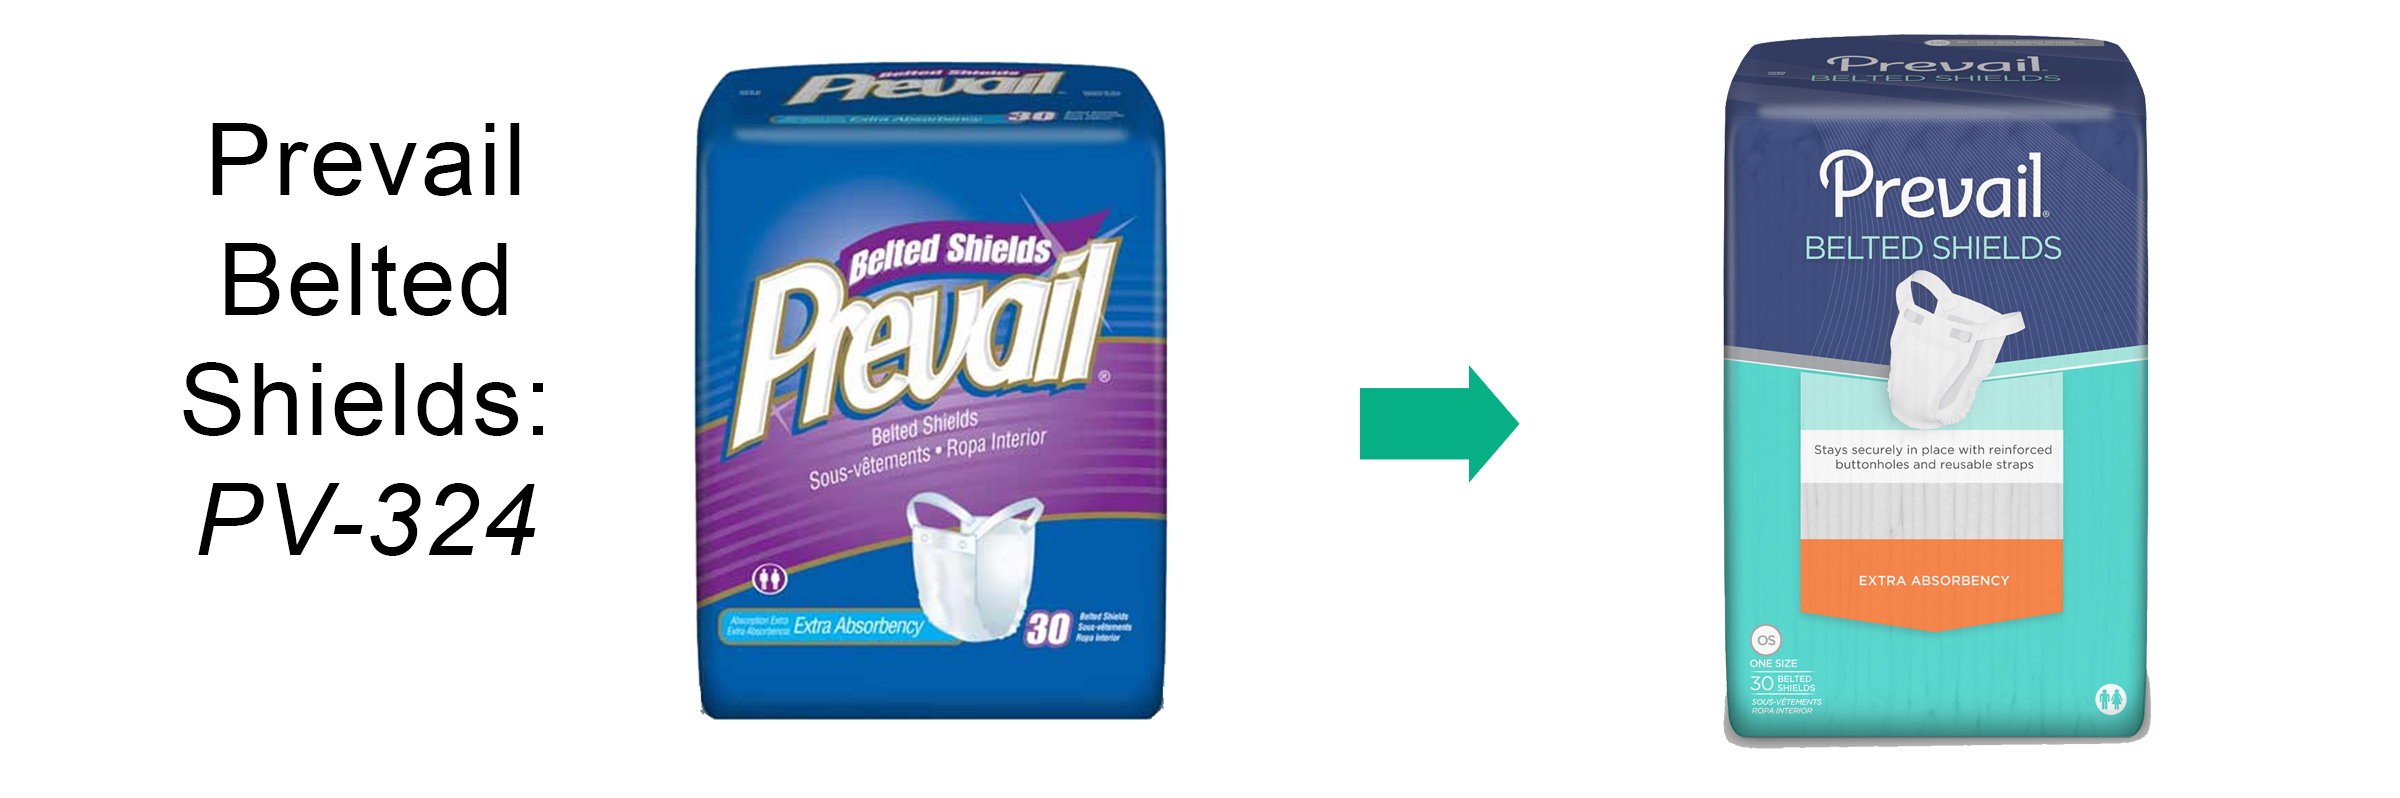 Prevail Packaging Real 6-13